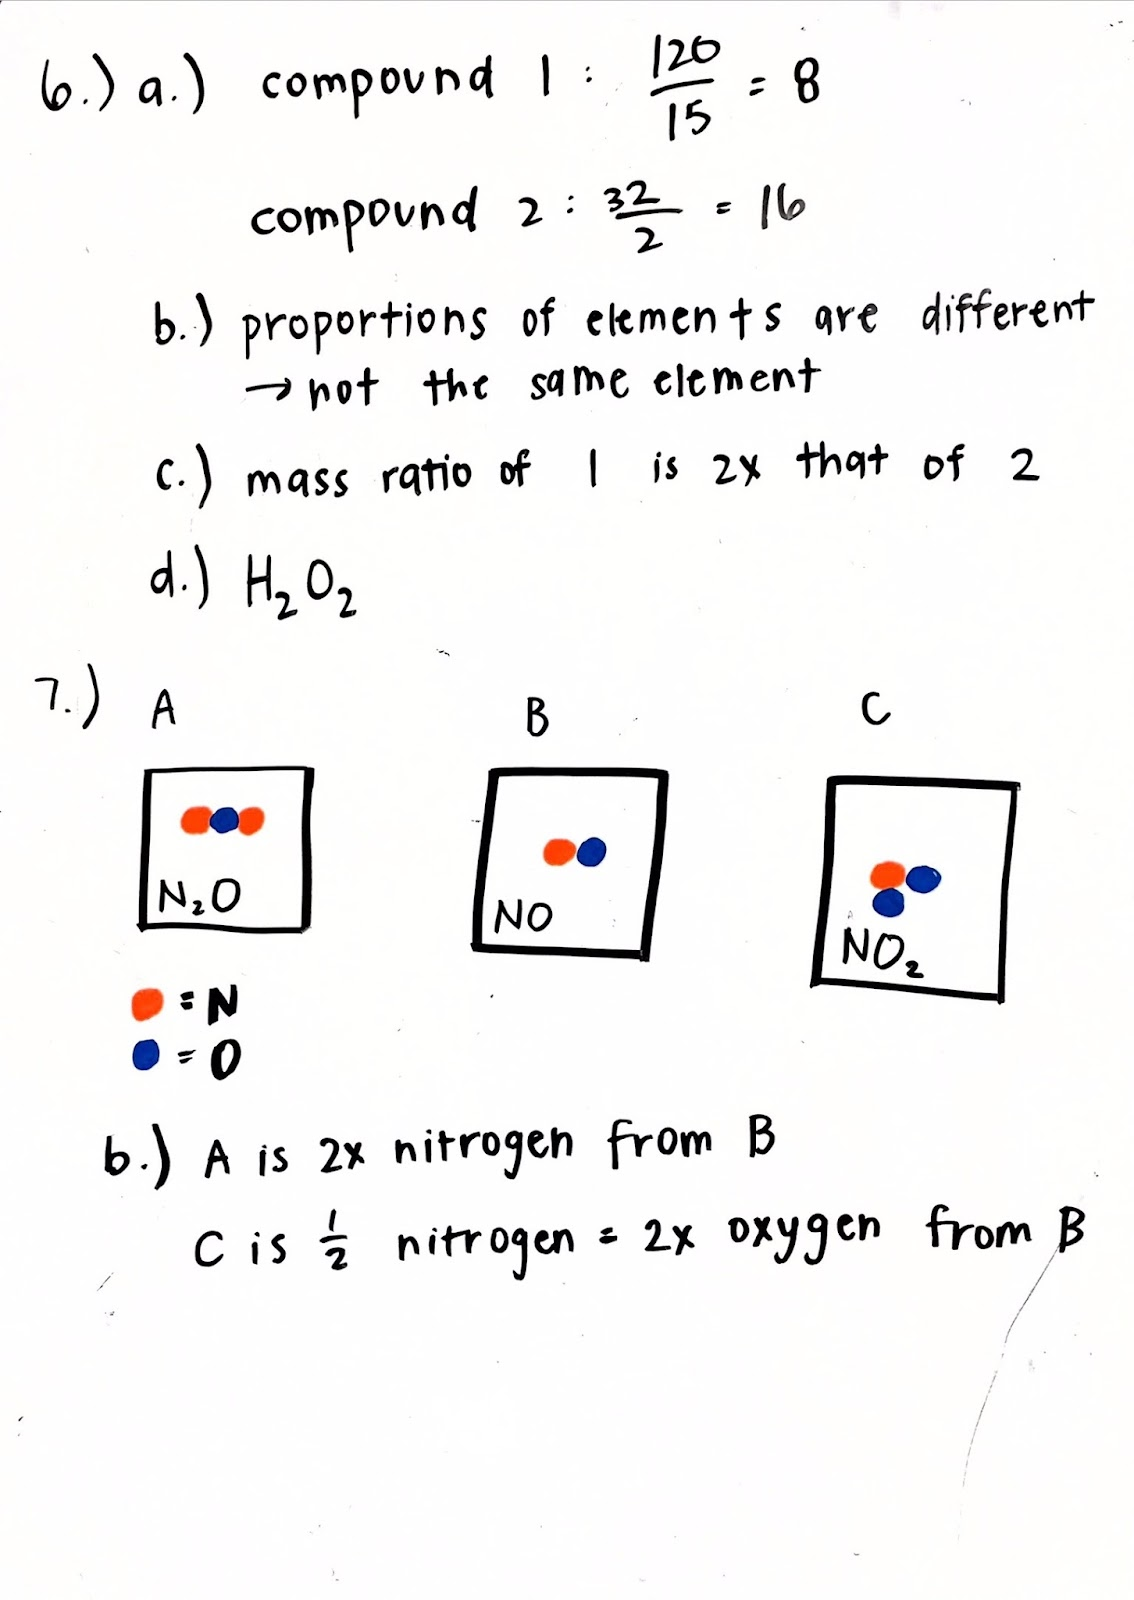 math worksheet : tang sg chemistry 2 reflections blog : Law Of Definite And Multiple Proportions Worksheet